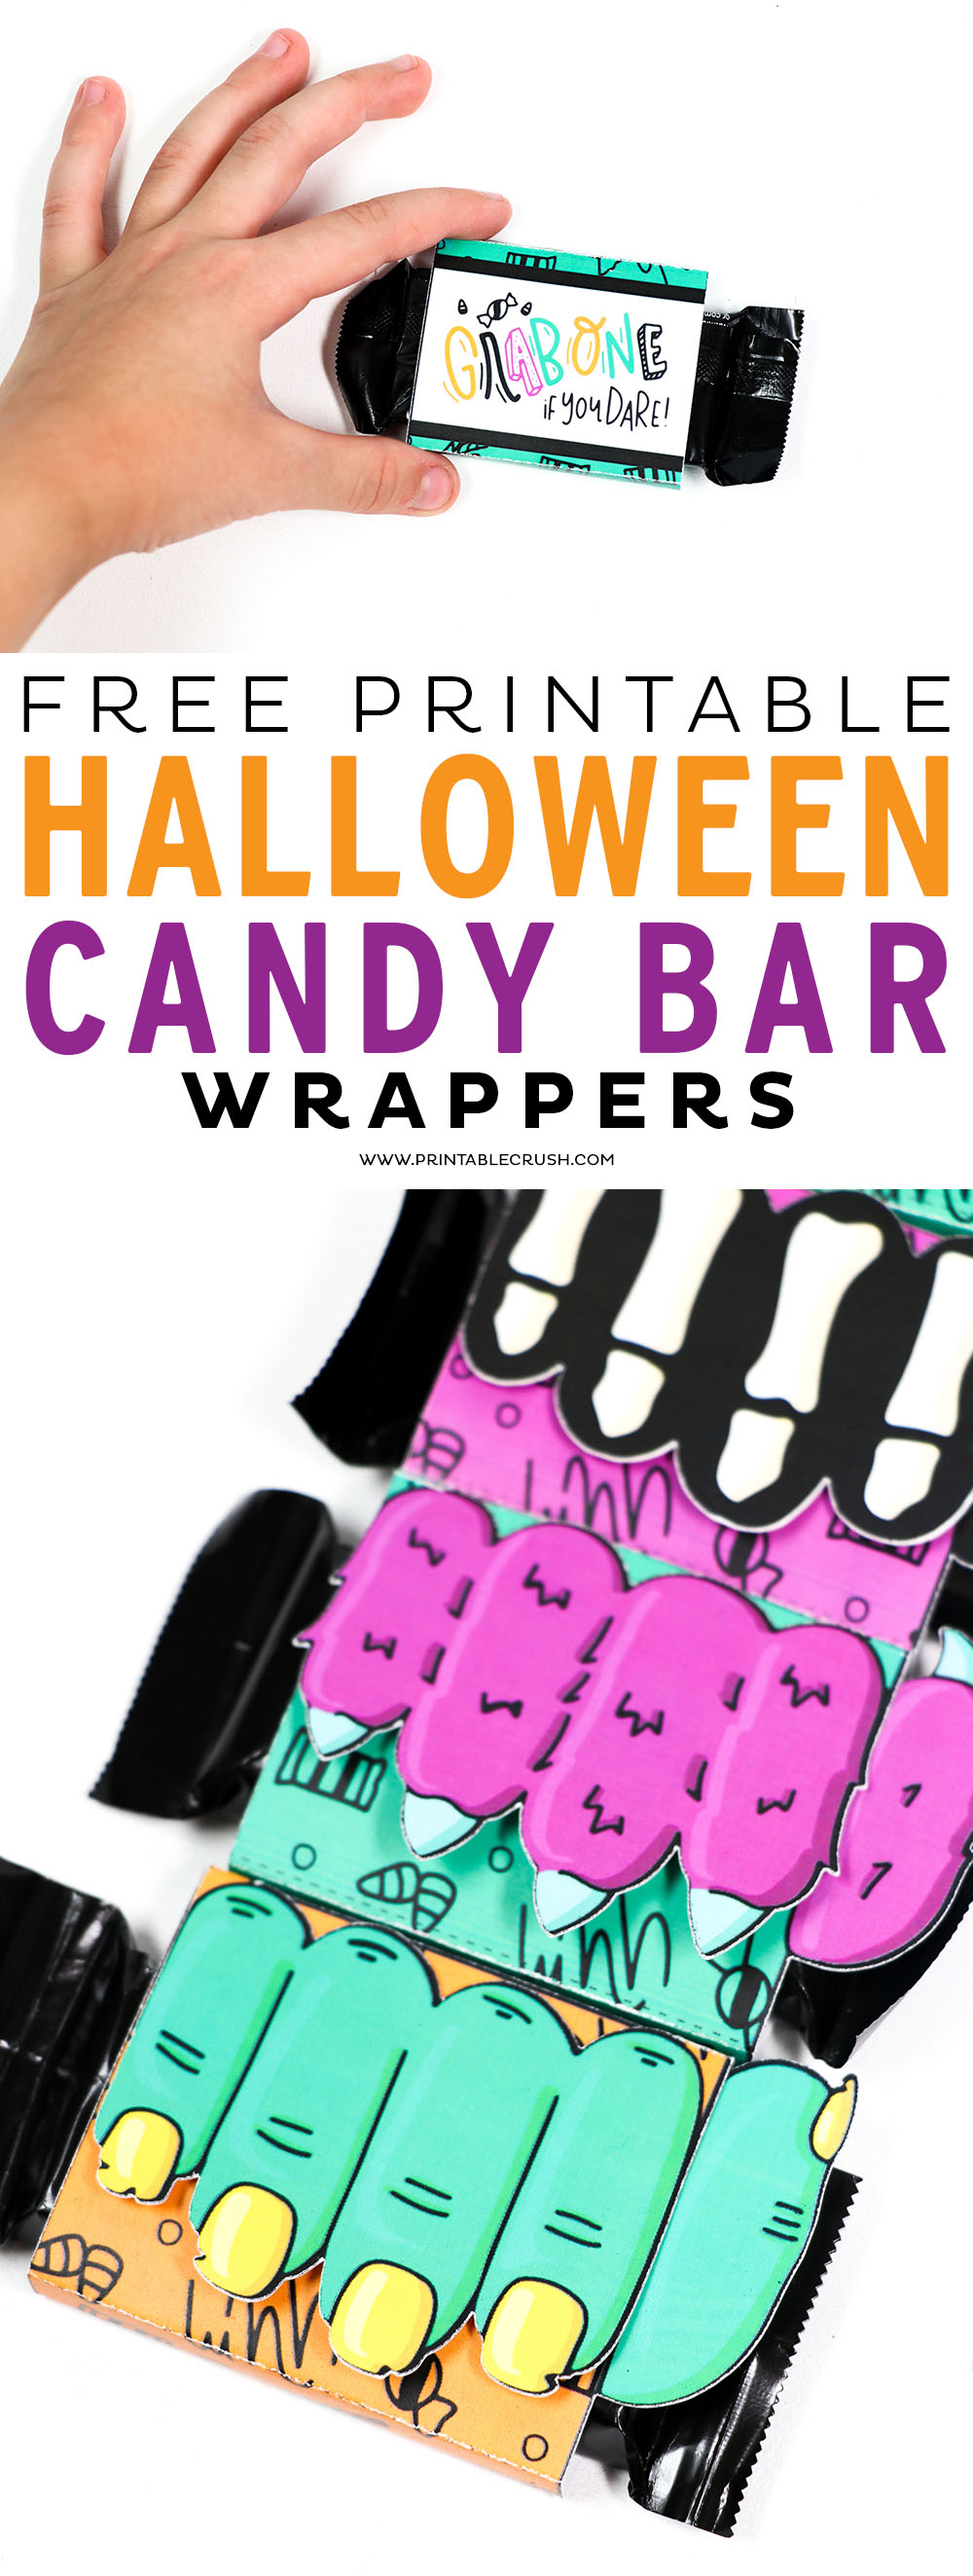 Make these Printable Halloween Candy Bar Wrappers for your next Halloween Party or give them out to trick or treaters!